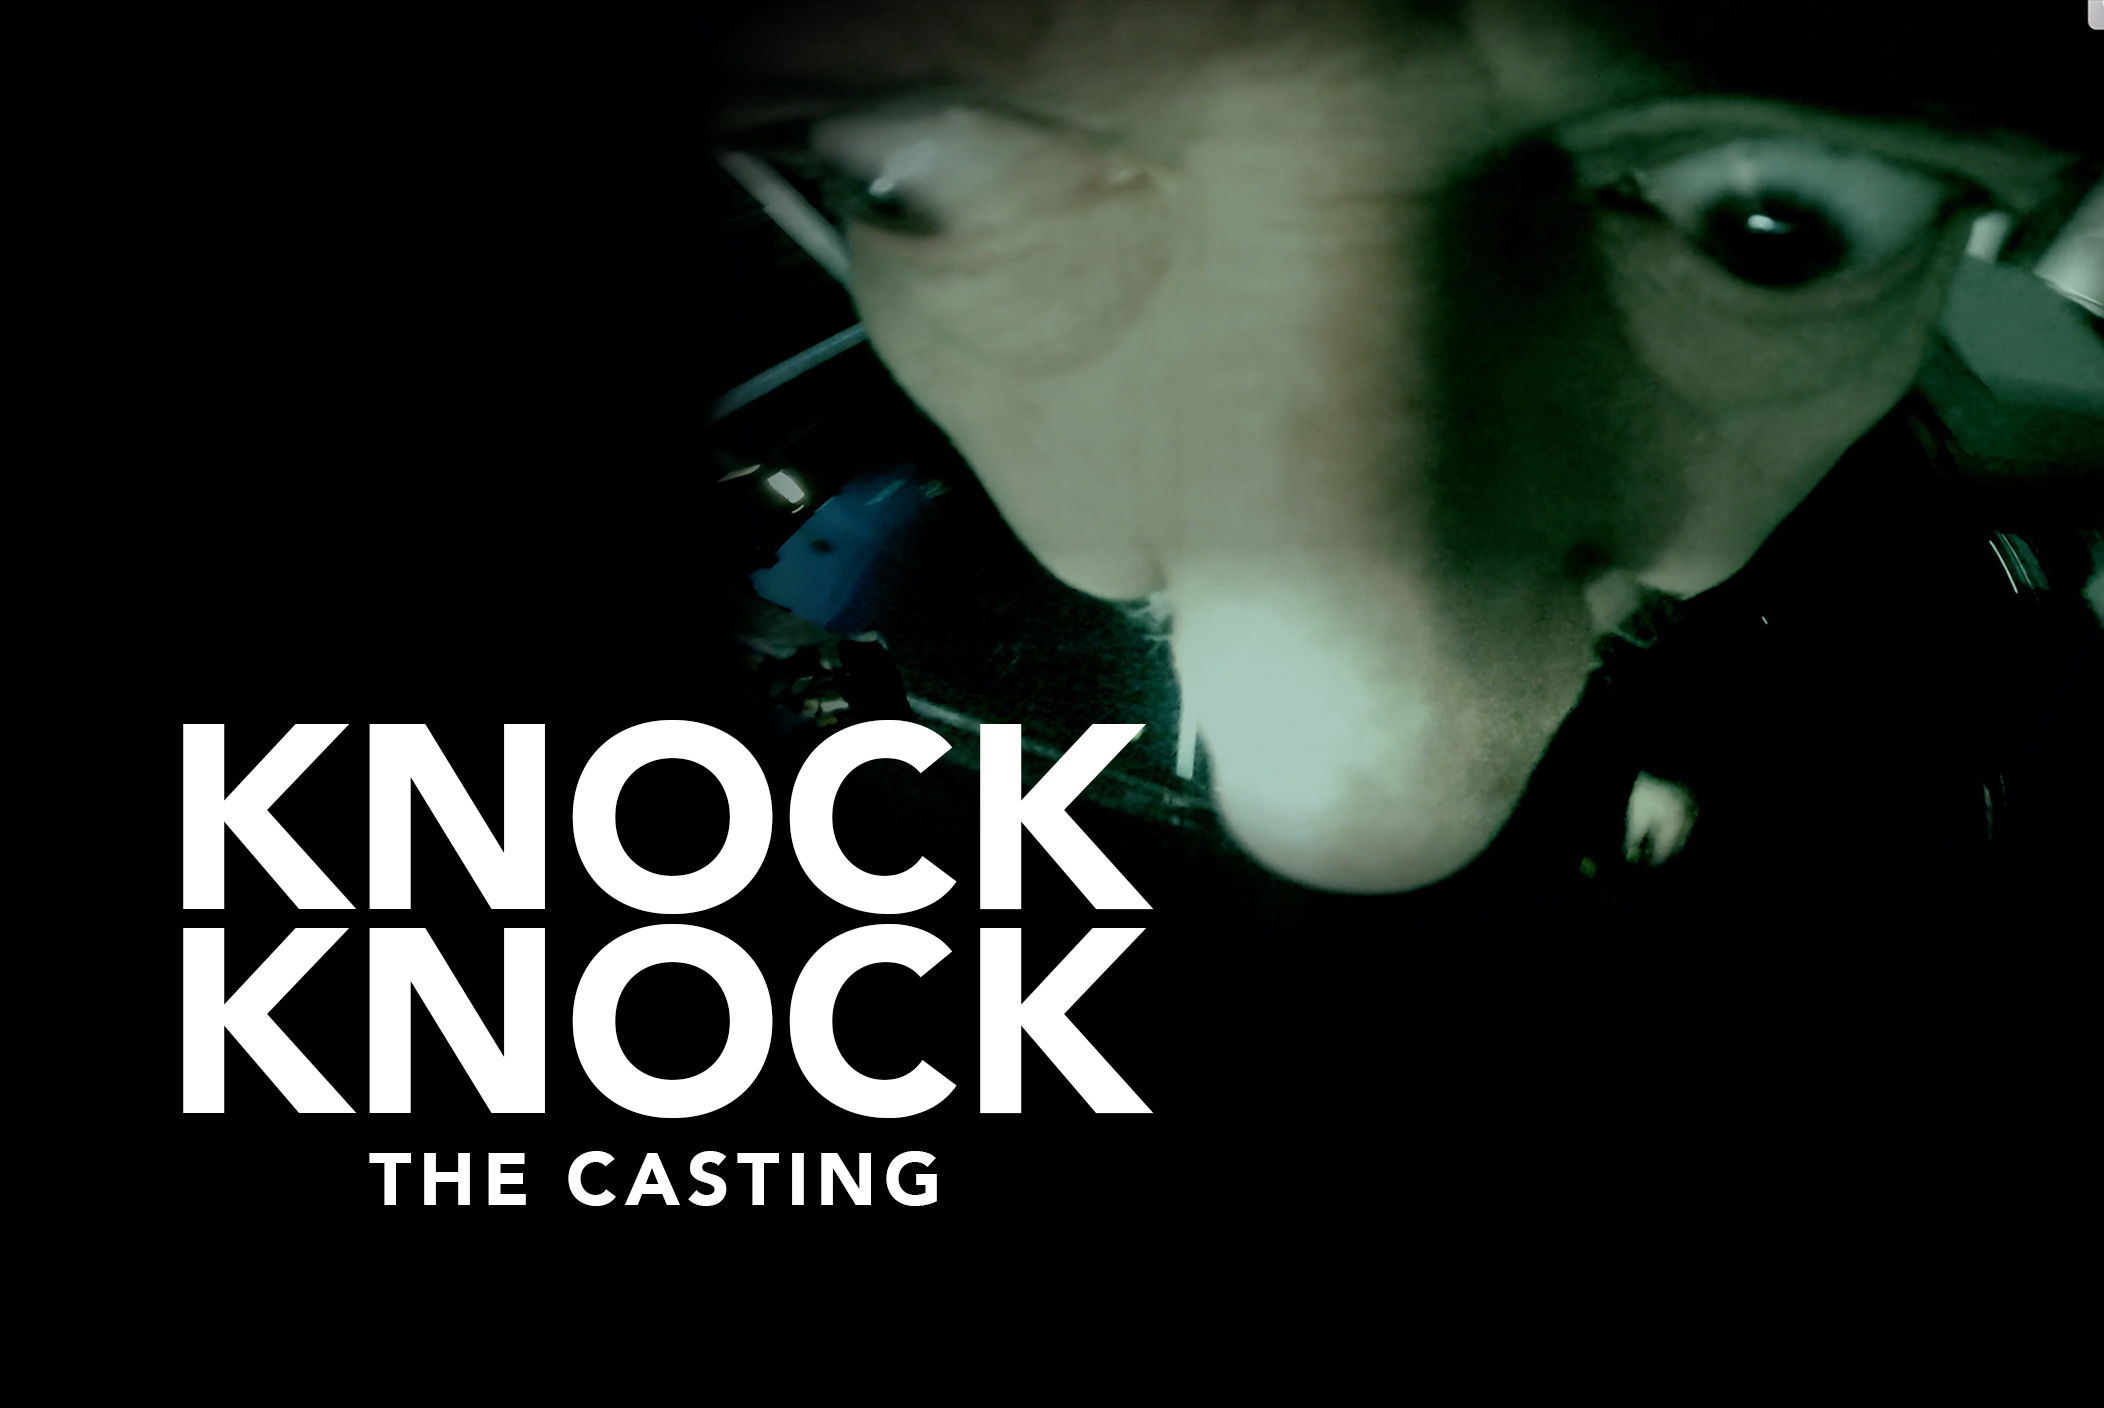 KNOCK KNOCK THE CASTING